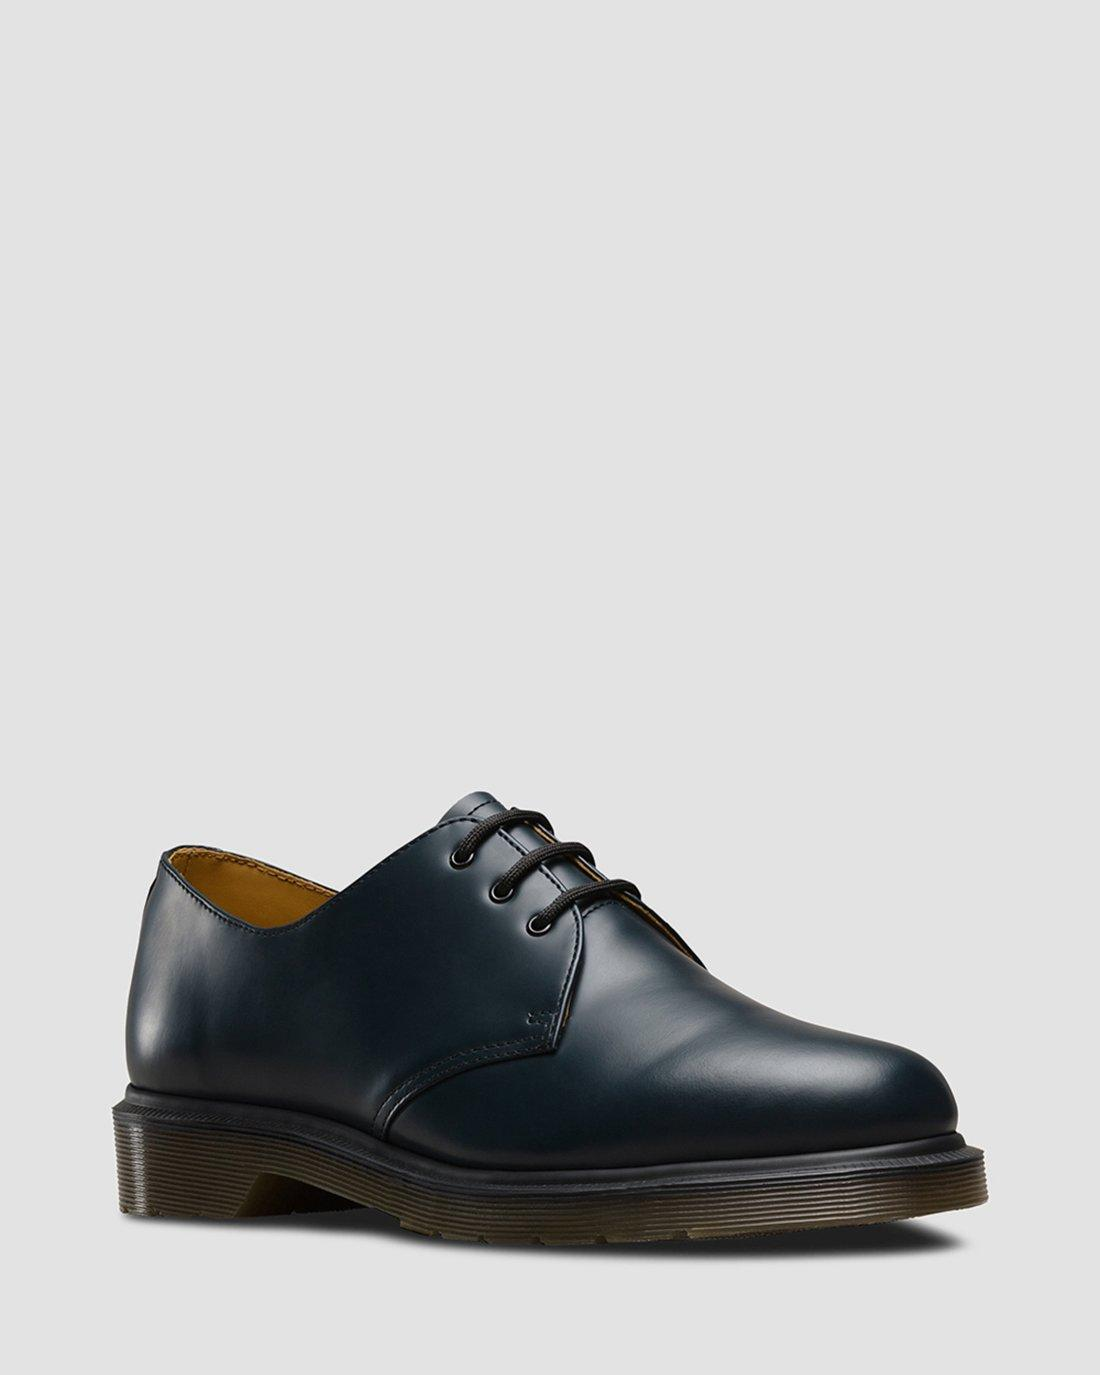 Dr martens 1461 plain welt smooth leather oxford shoes